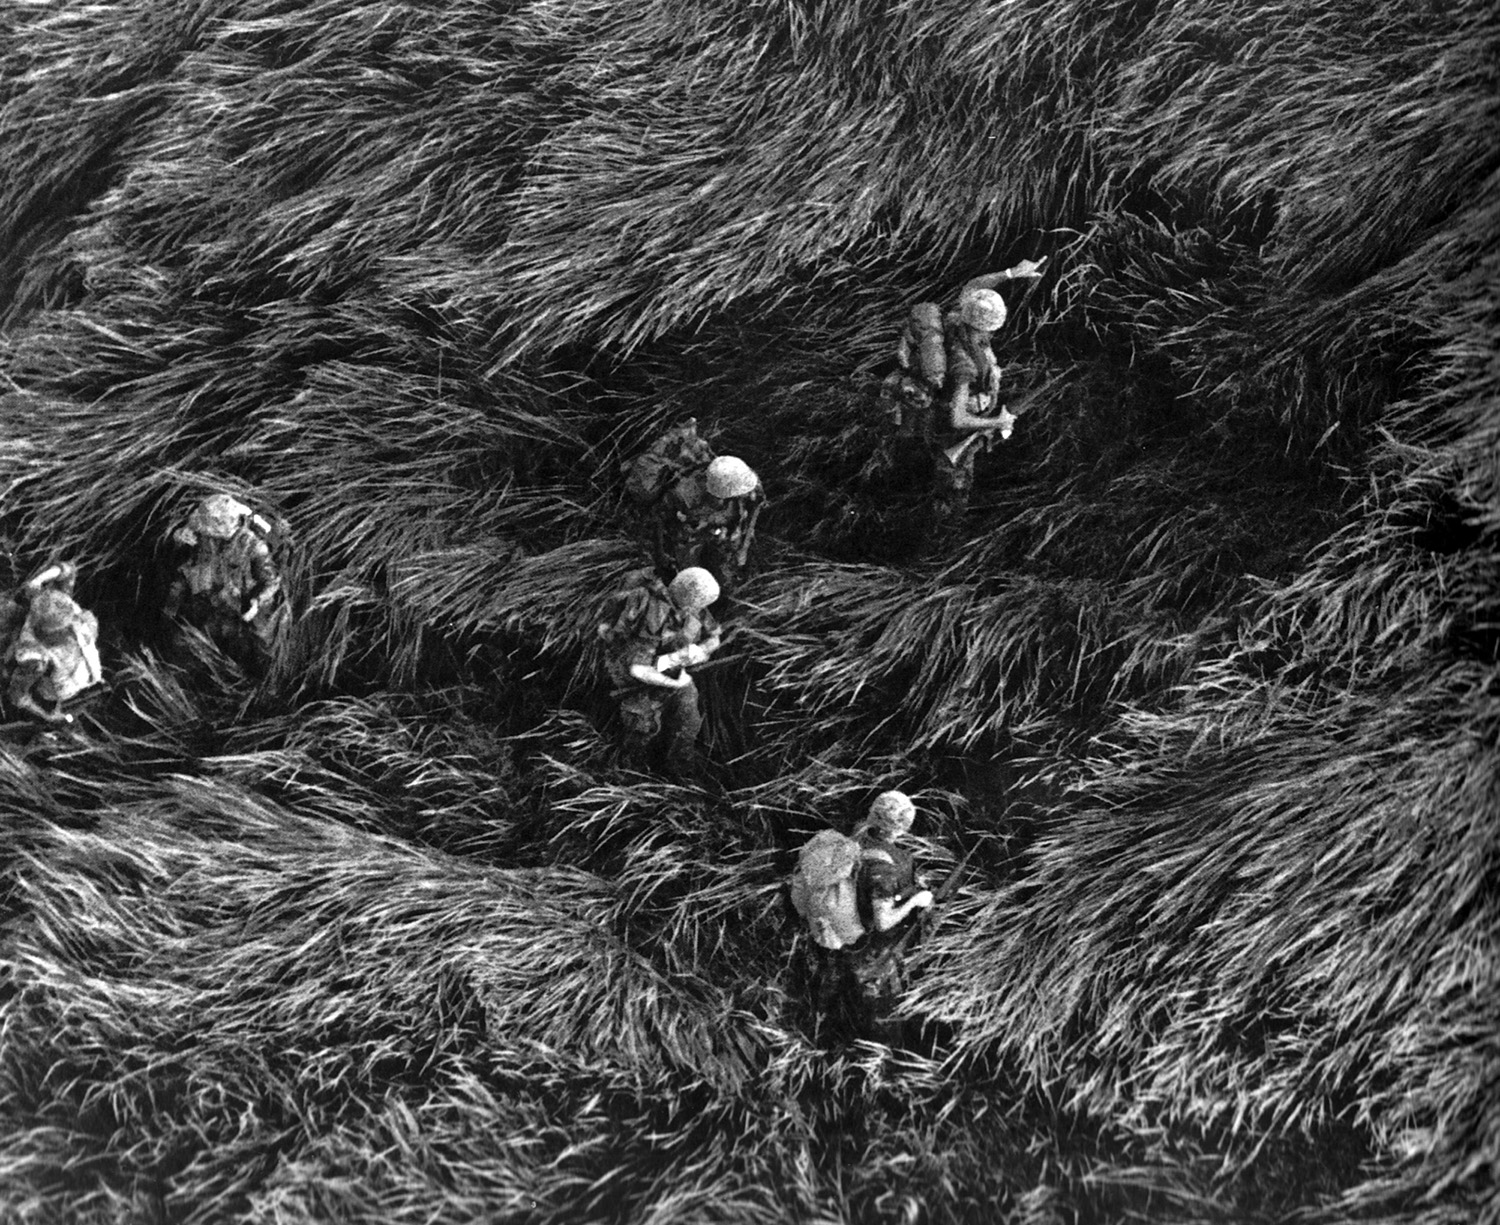 1968_11_marines_in_elephant_grass.jpg